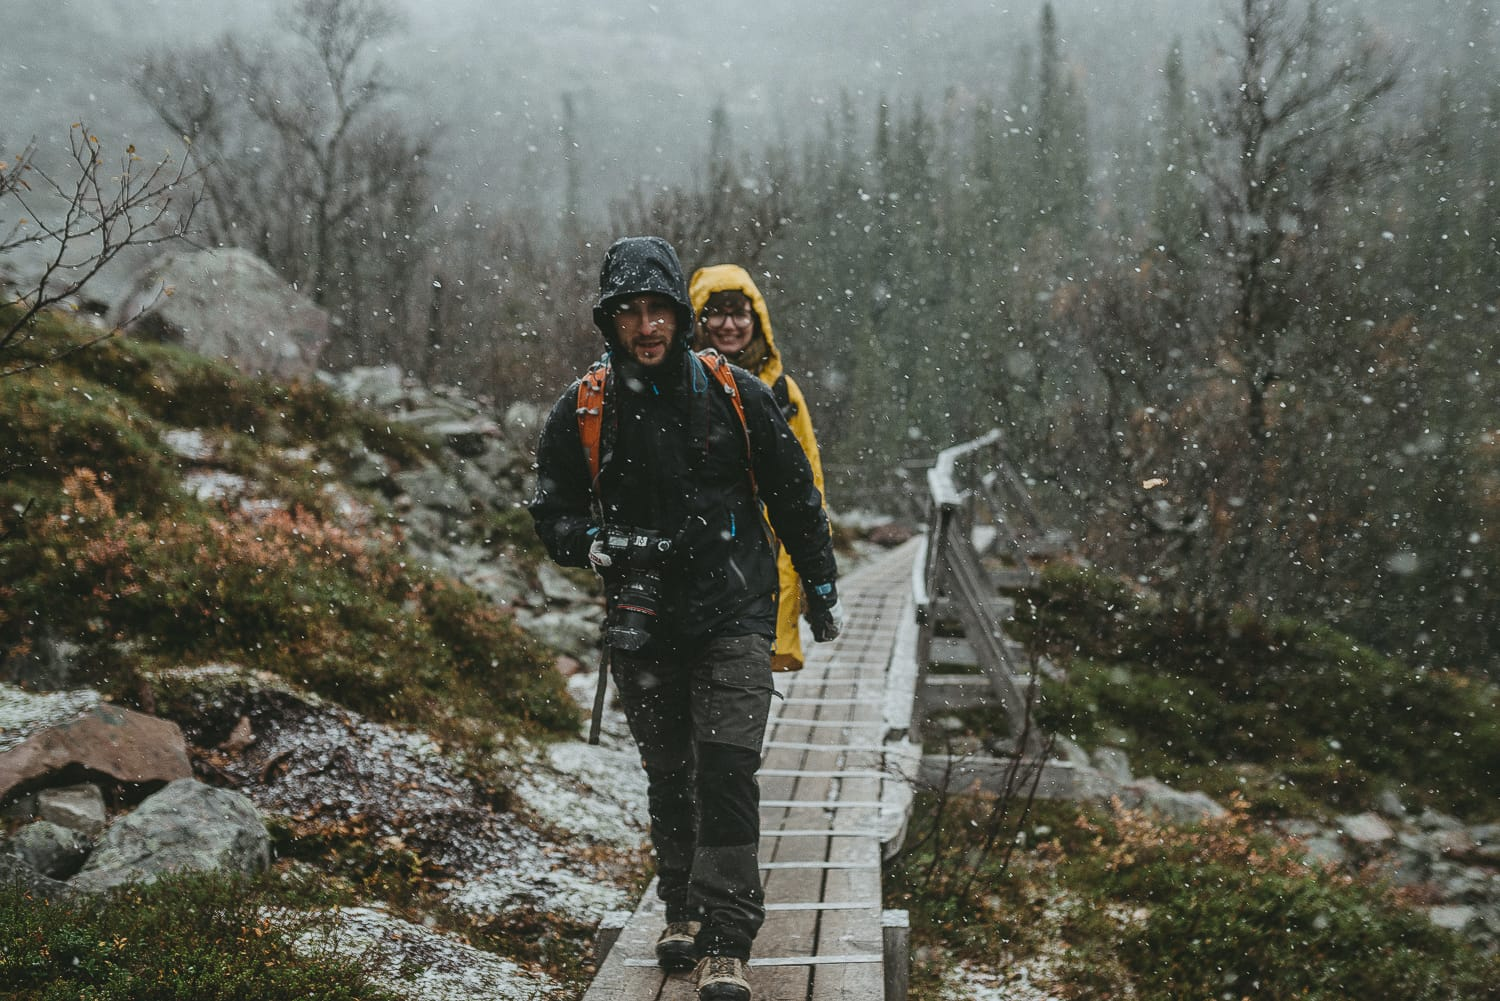 hikers during snowfall